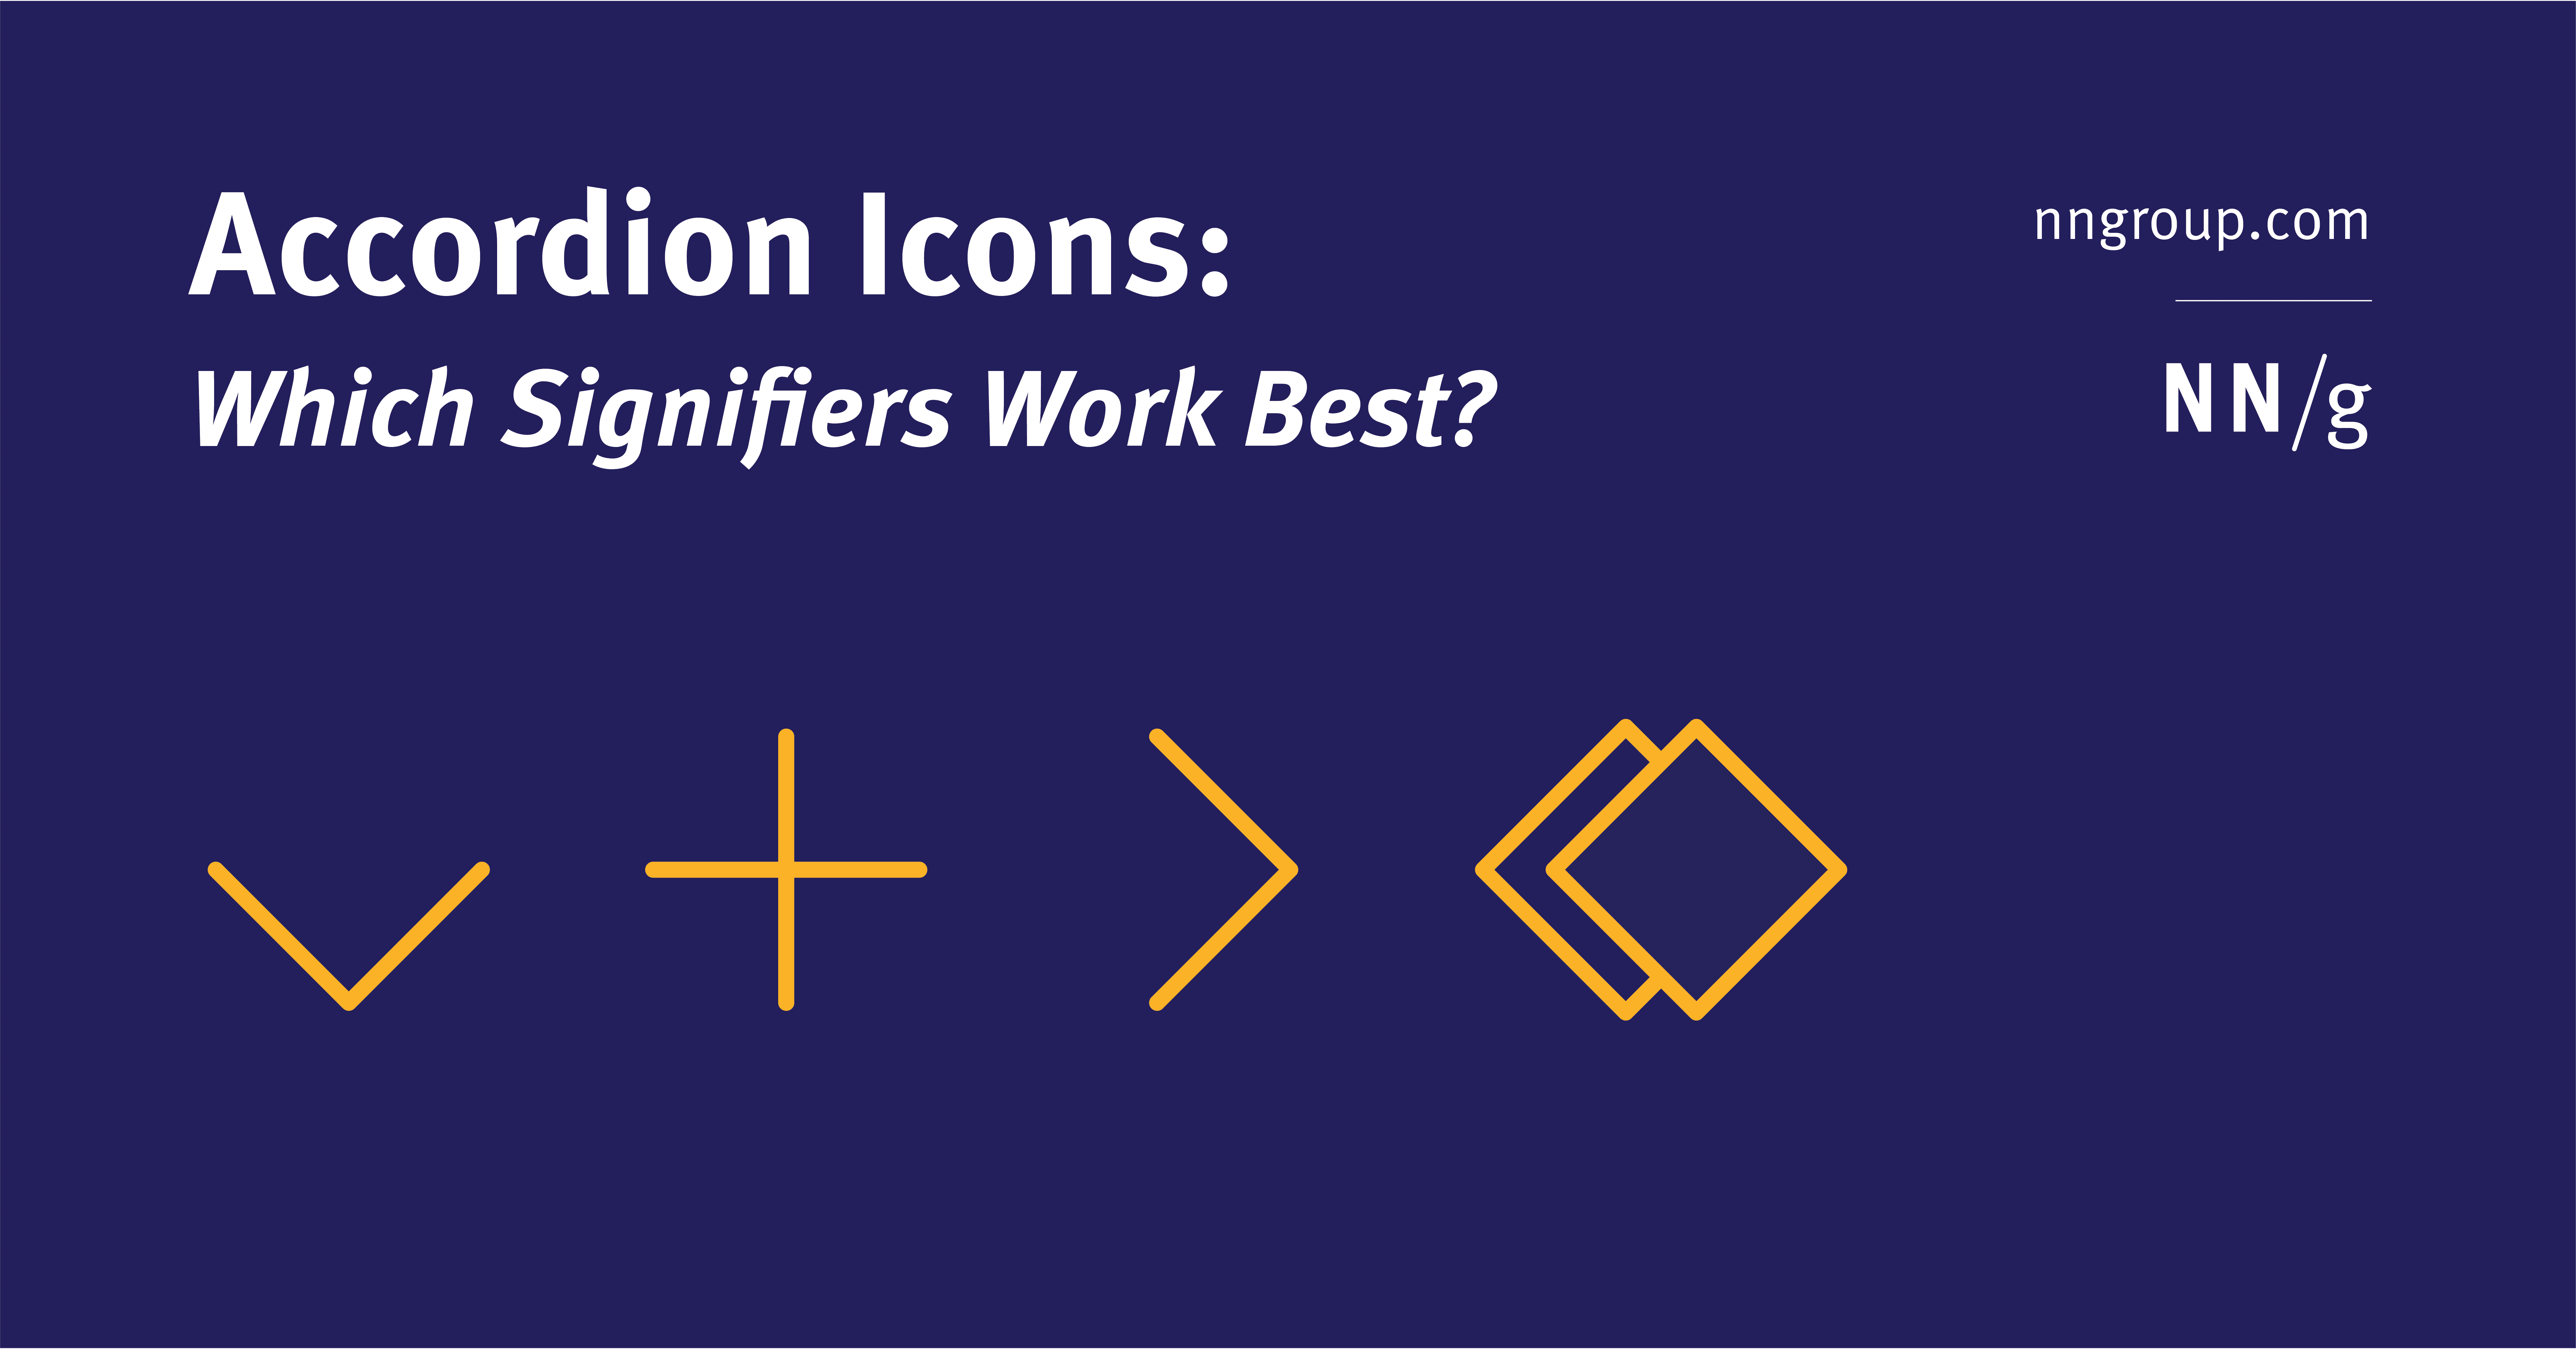 Accordion Icons: Which Signifiers Work Best?